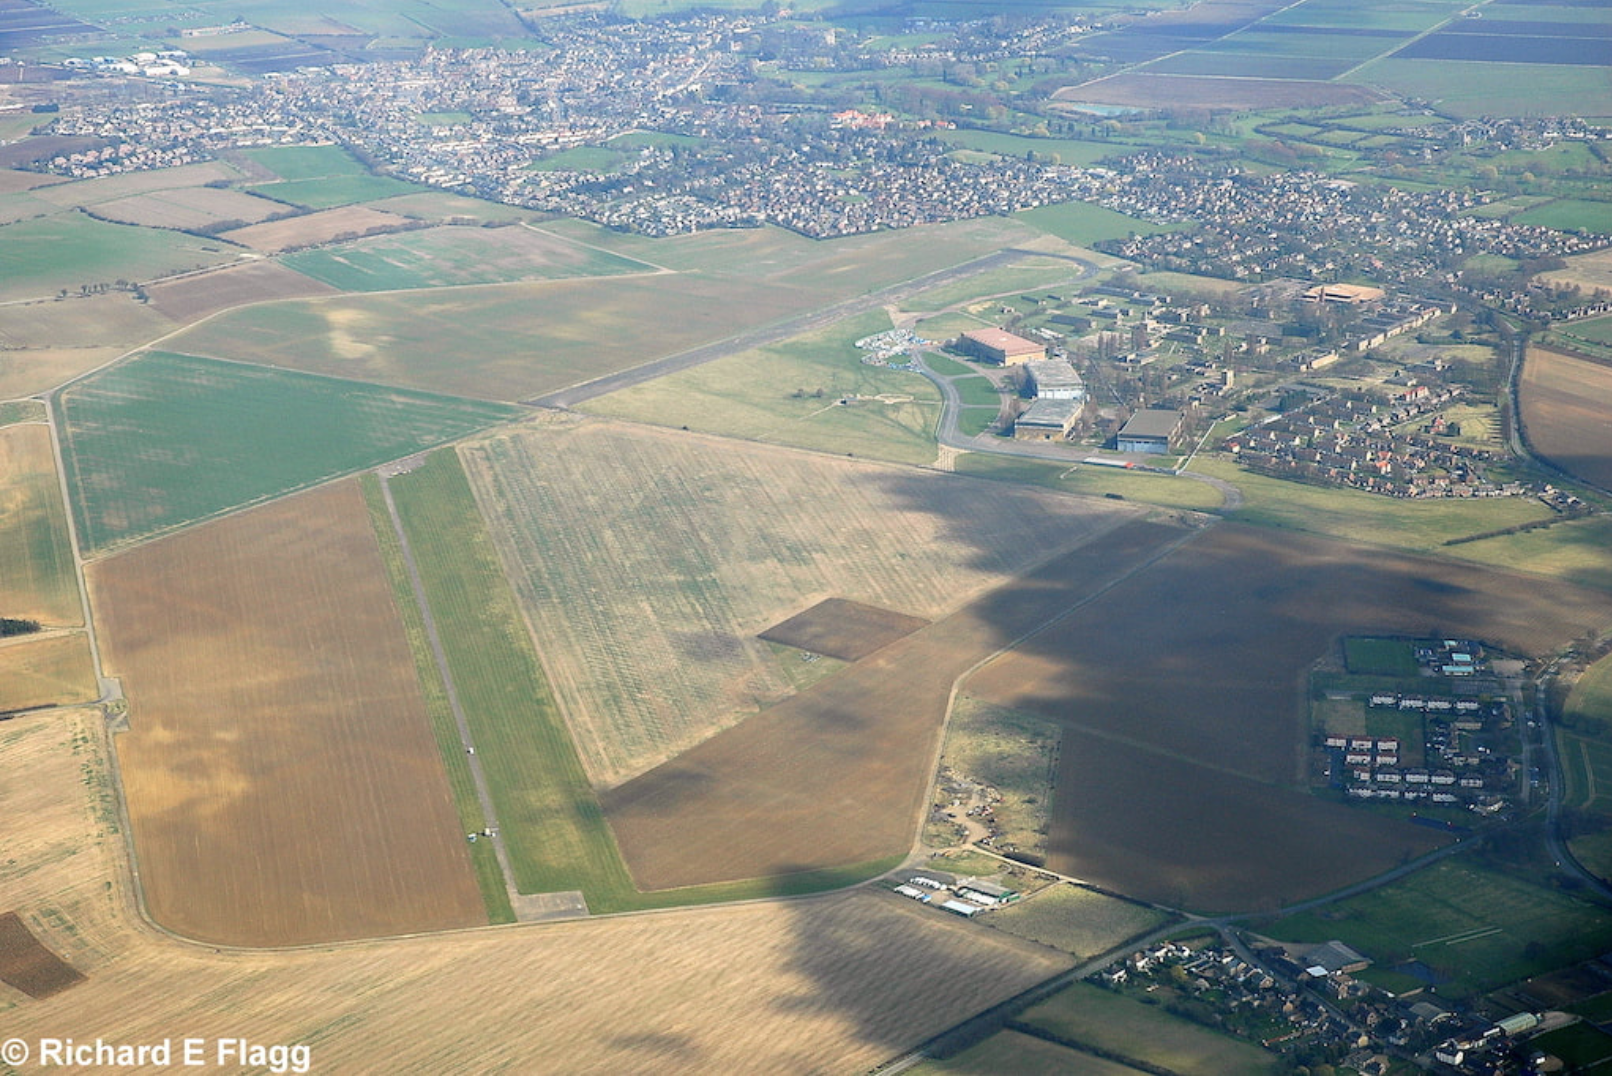 012Aerial View of RAF Upwood Airfield - 22 March 2009.png